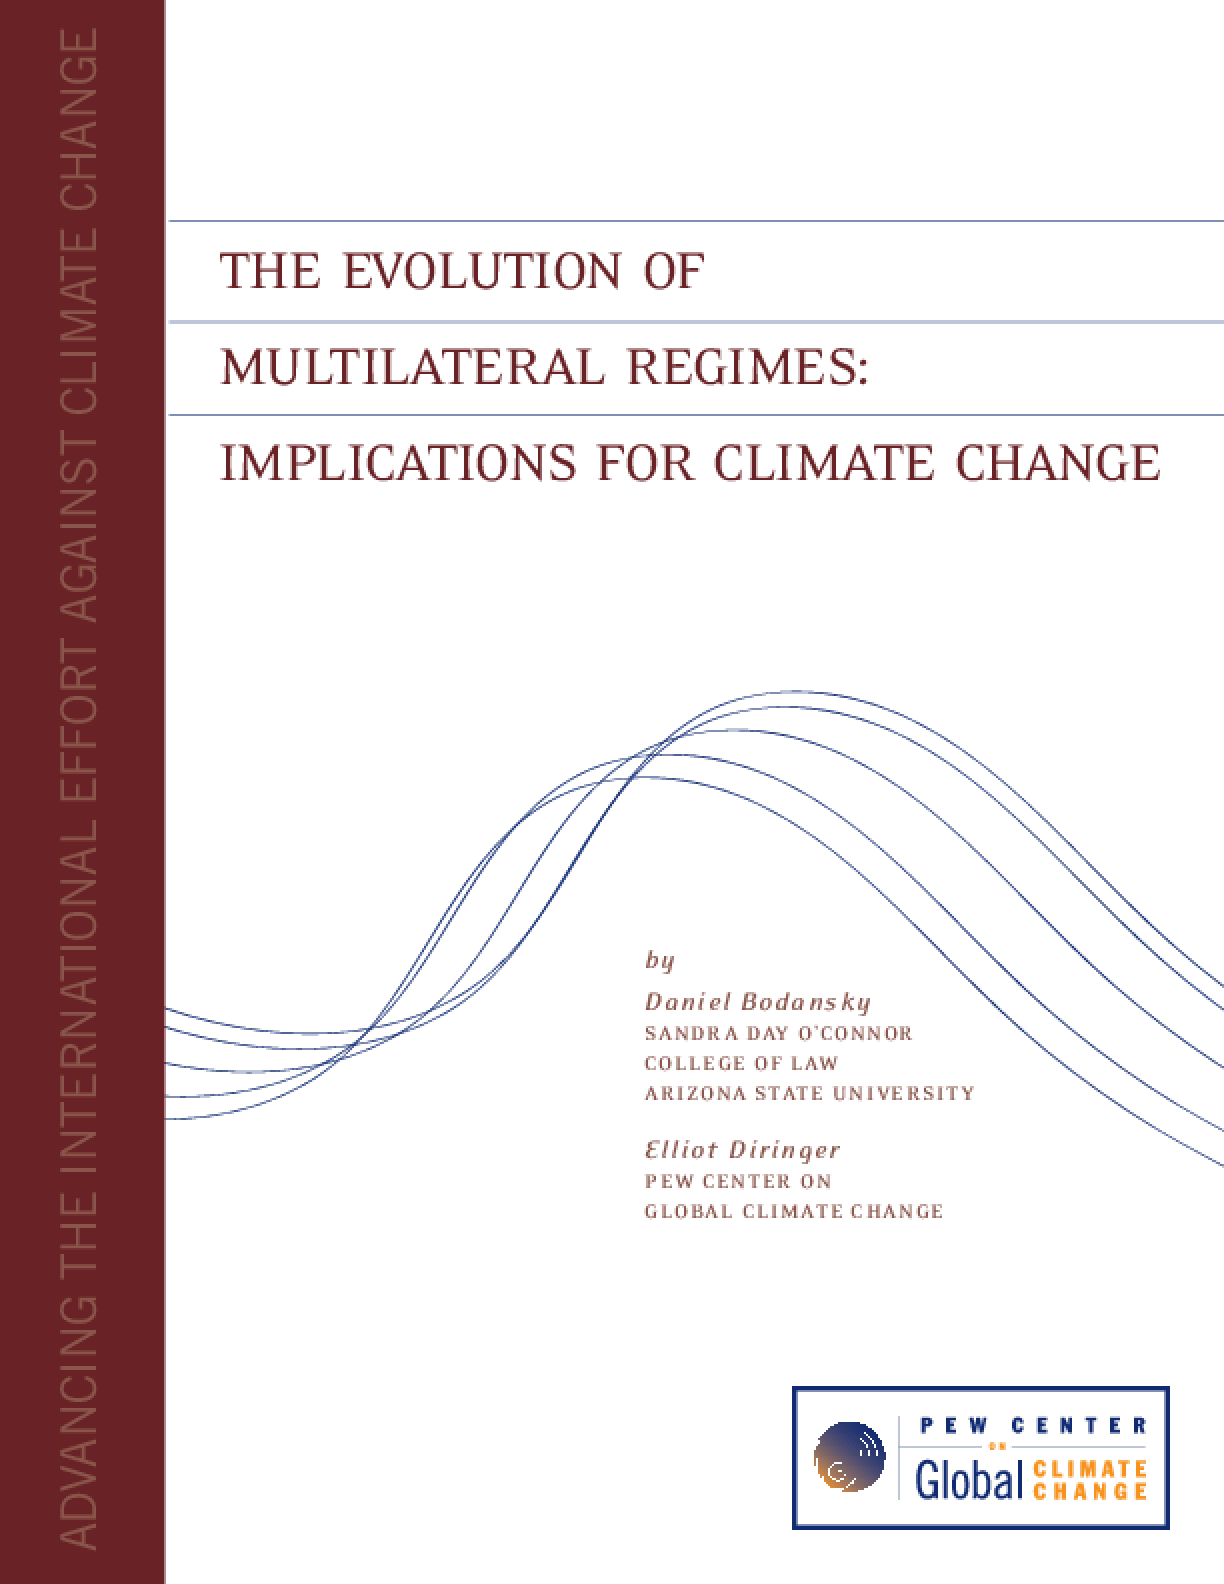 The Evolution of Multilateral Regimes: Implications for Climate Change